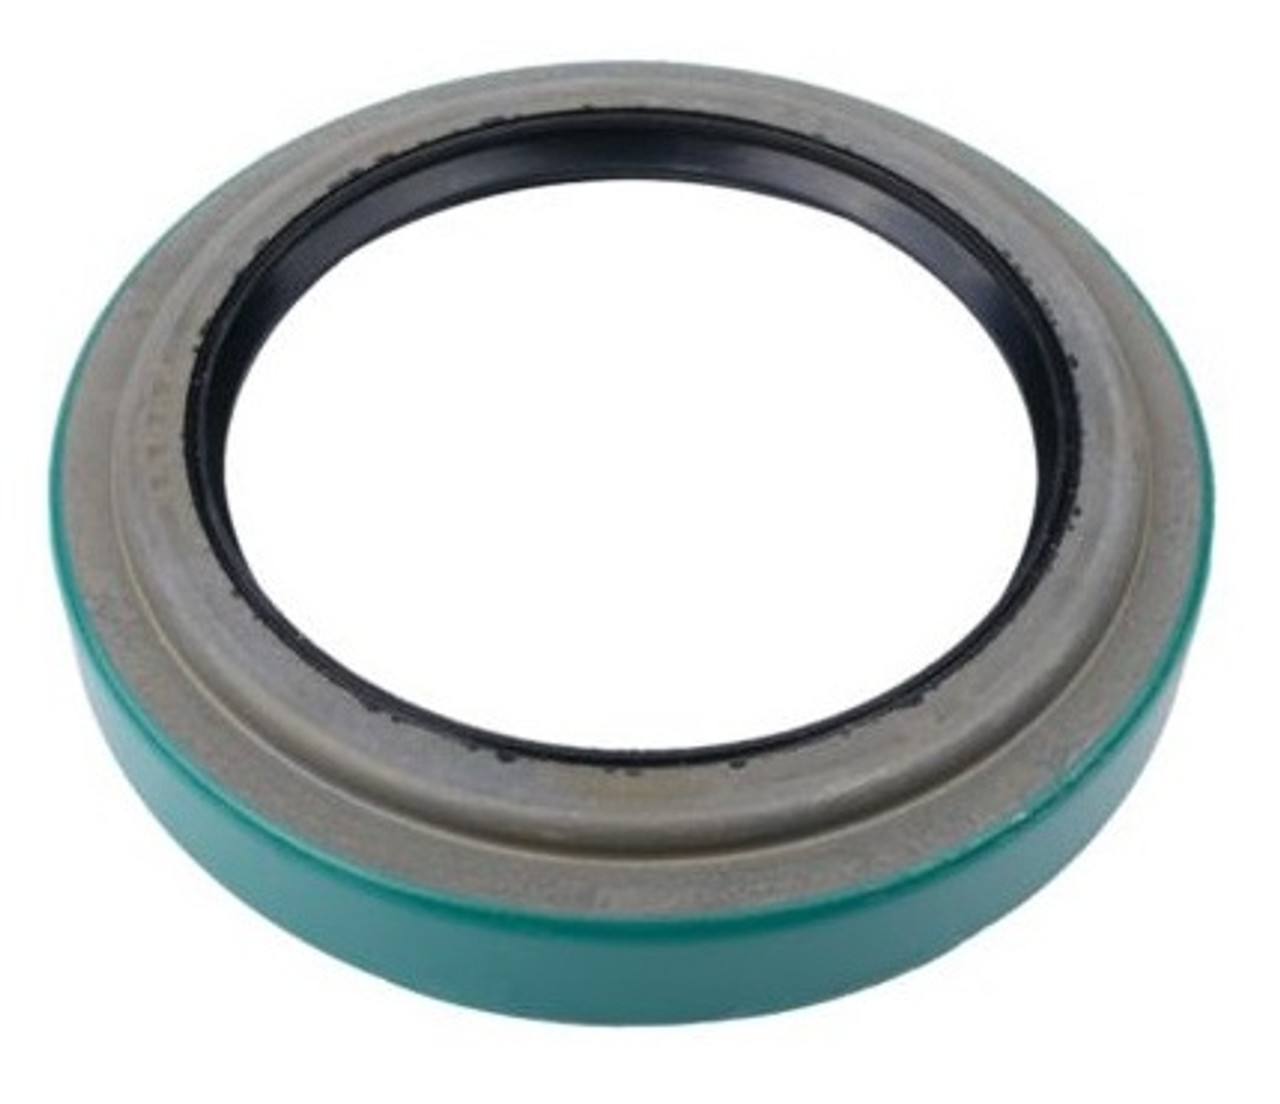 SKF Chicago Rawhide CR 9939 Oil Seal